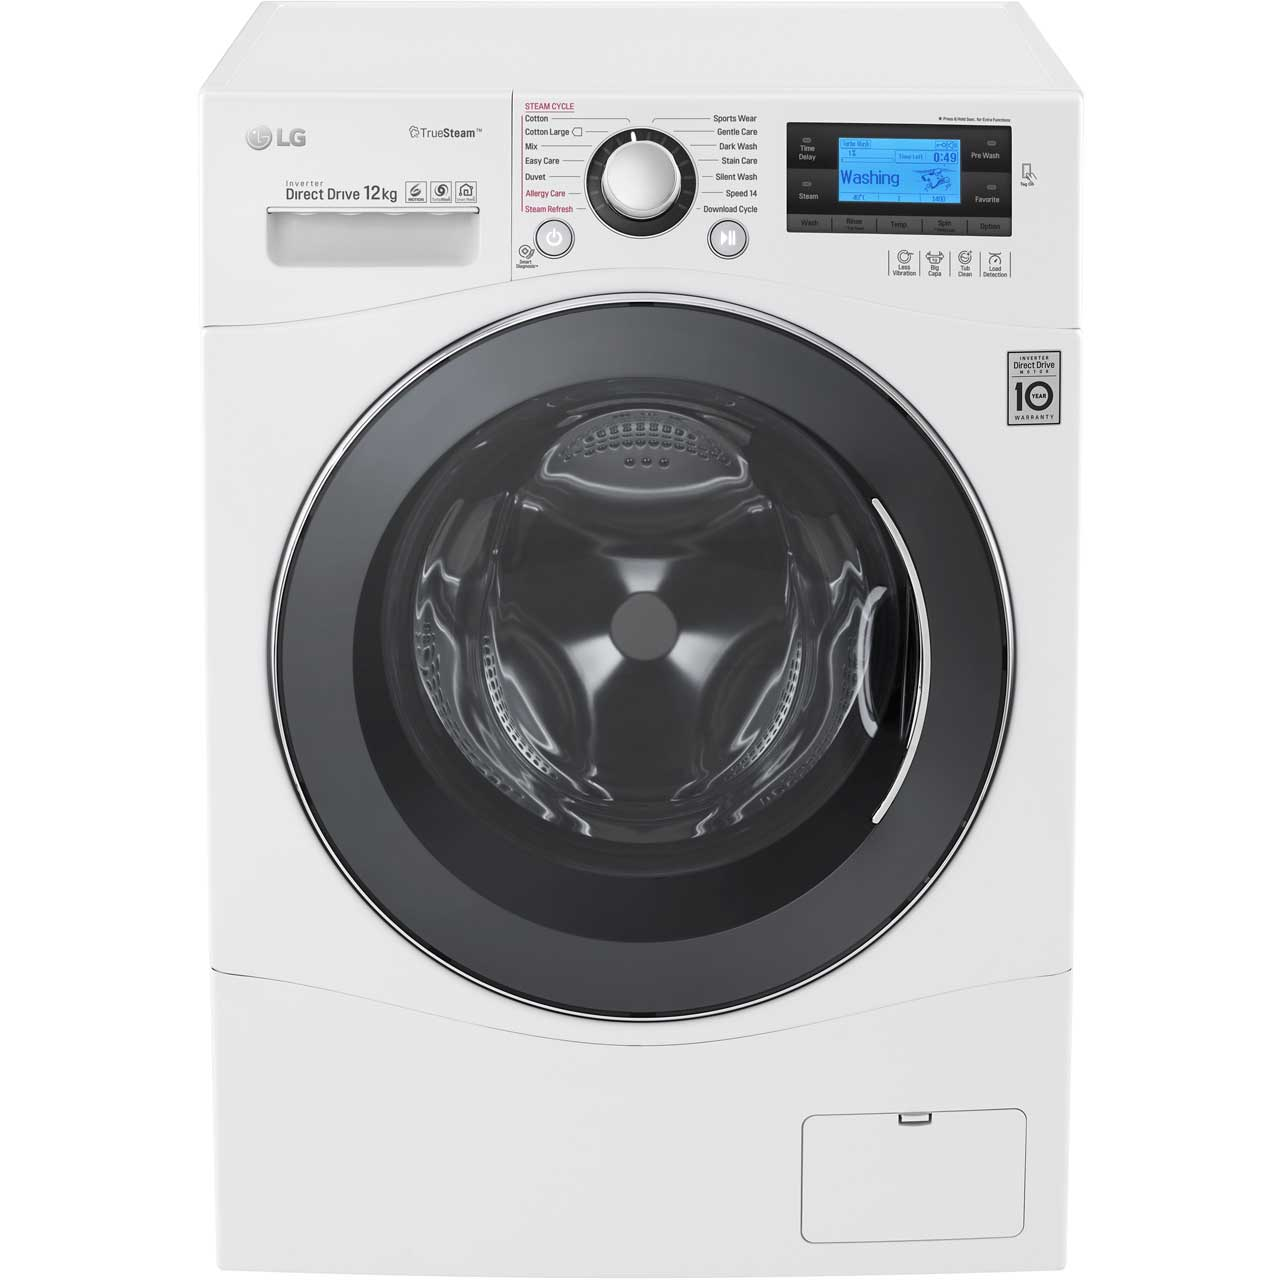 LG FH495BDS2 Free Standing Washing Machine in White